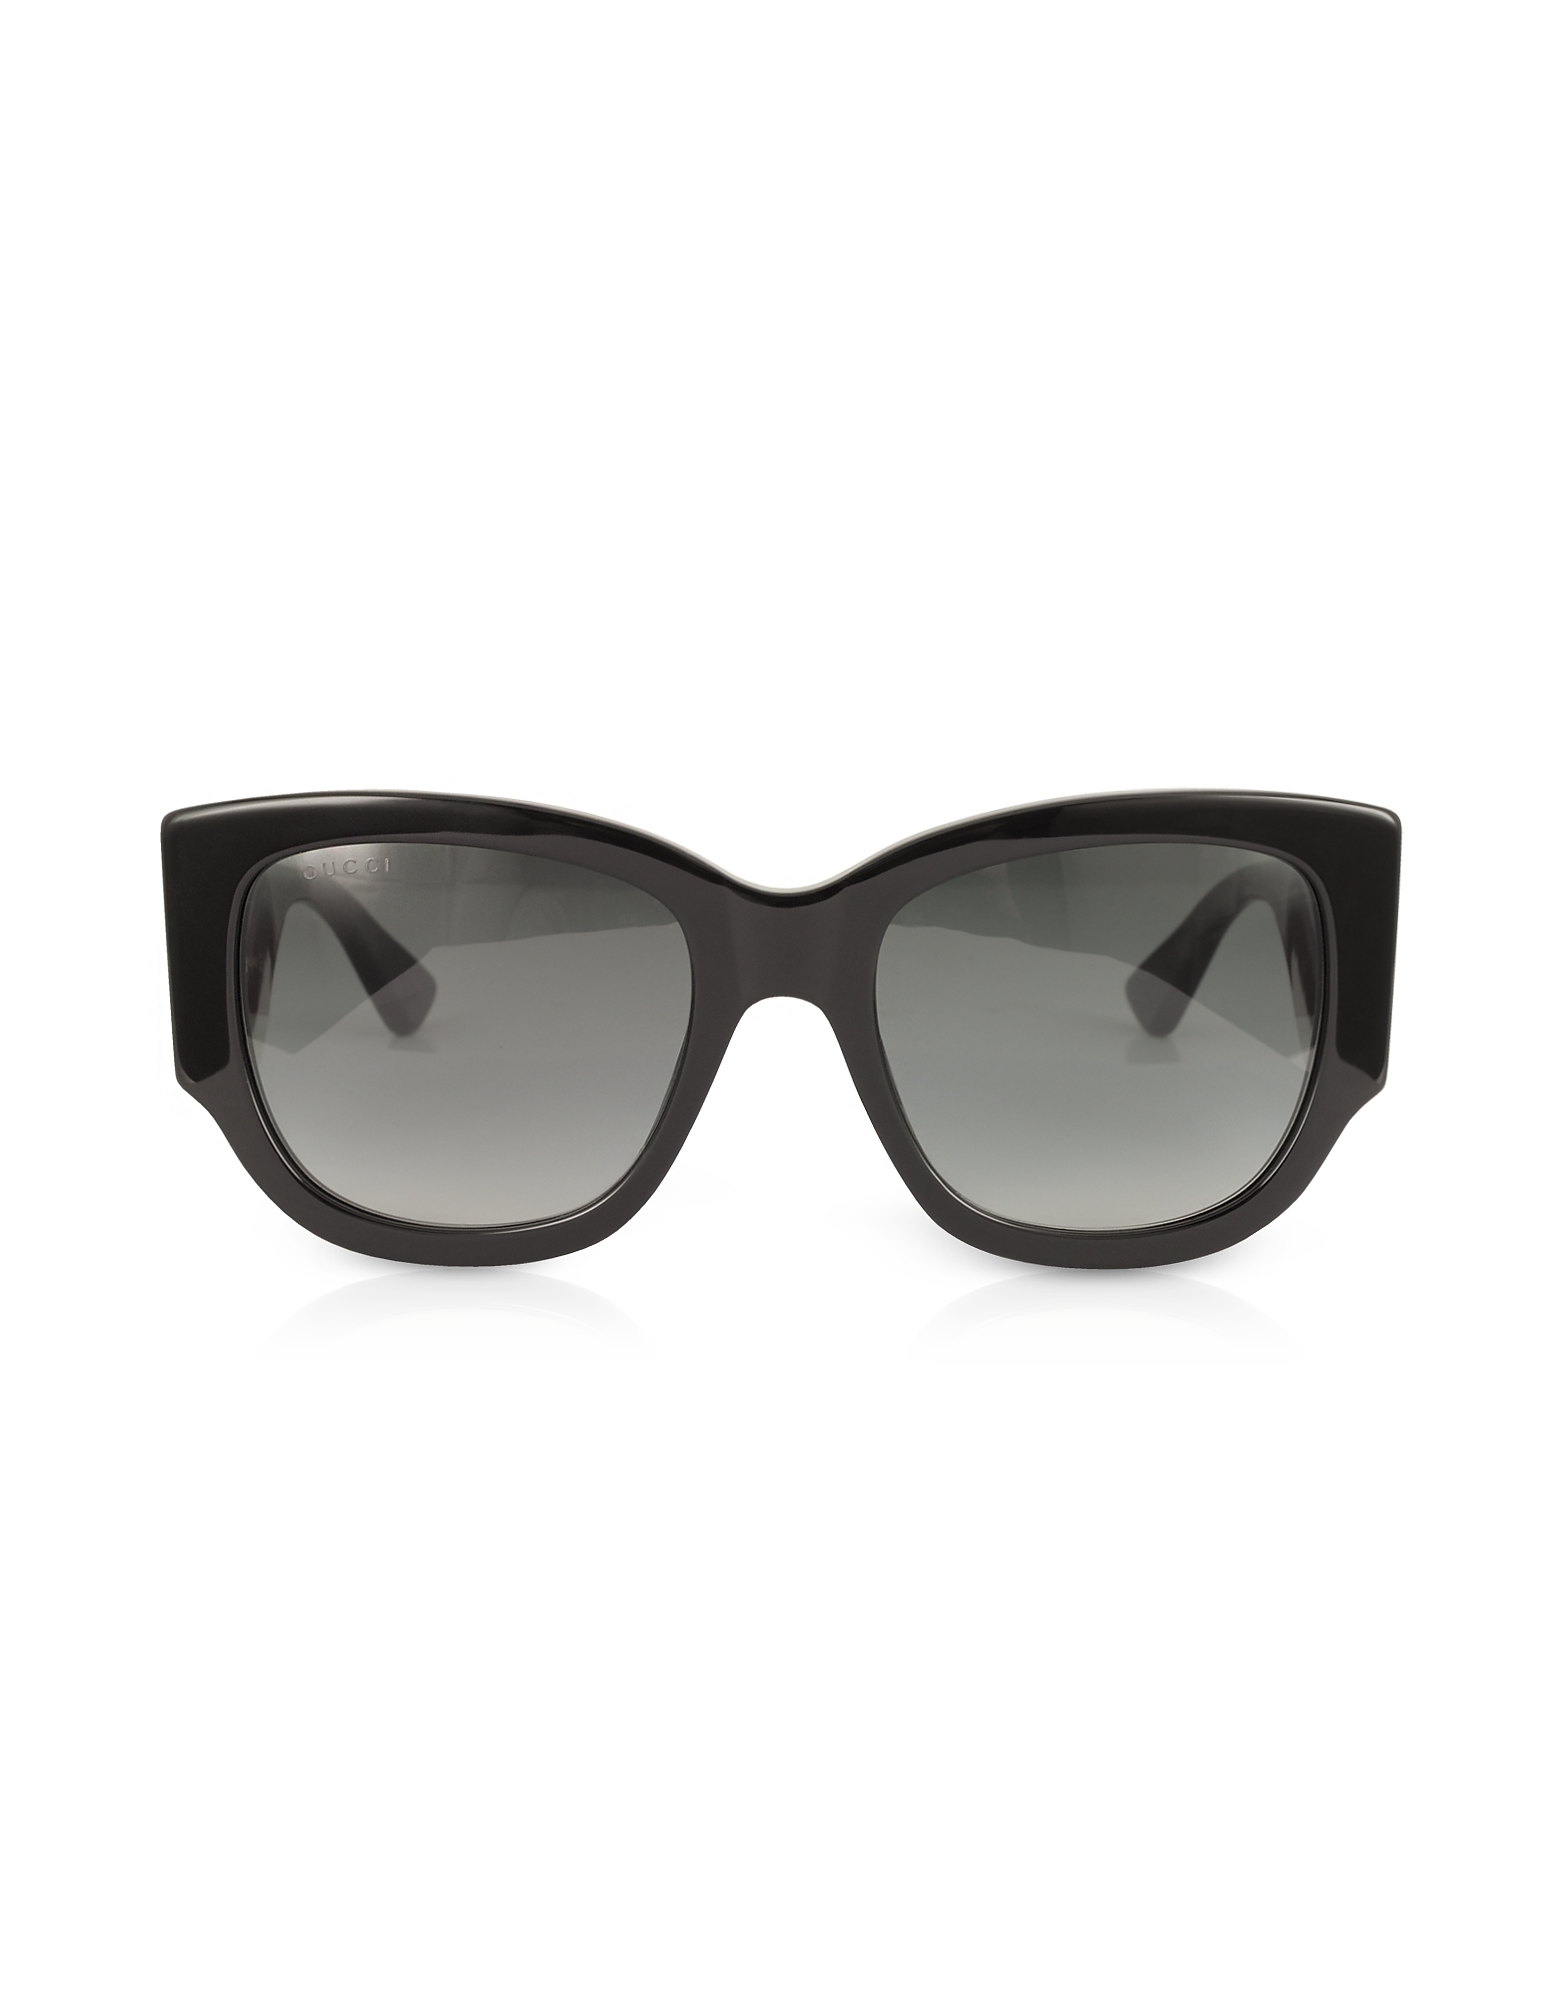 Gucci Designer Sunglasses, GG0276S Black Oversize Cat Eye Acetate Sunglasses w/Sylvie Web Temples